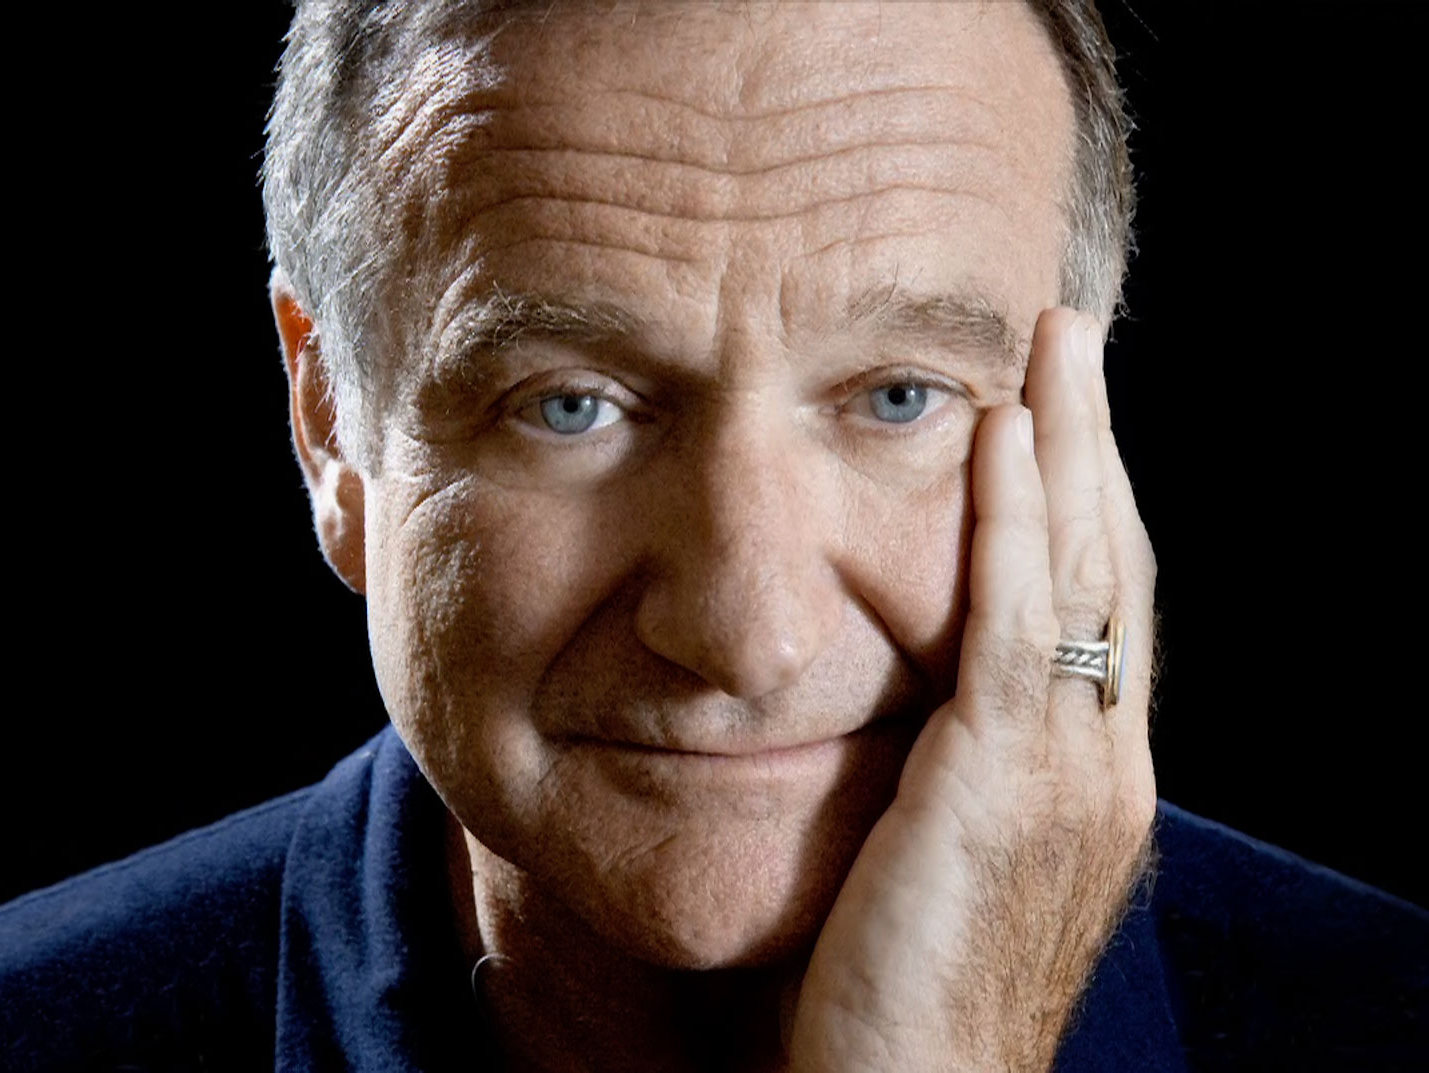 Robin Williams, Williams, Robin, My Captain, Captain, O Captain, Legendary Robin Williams, Vietnam